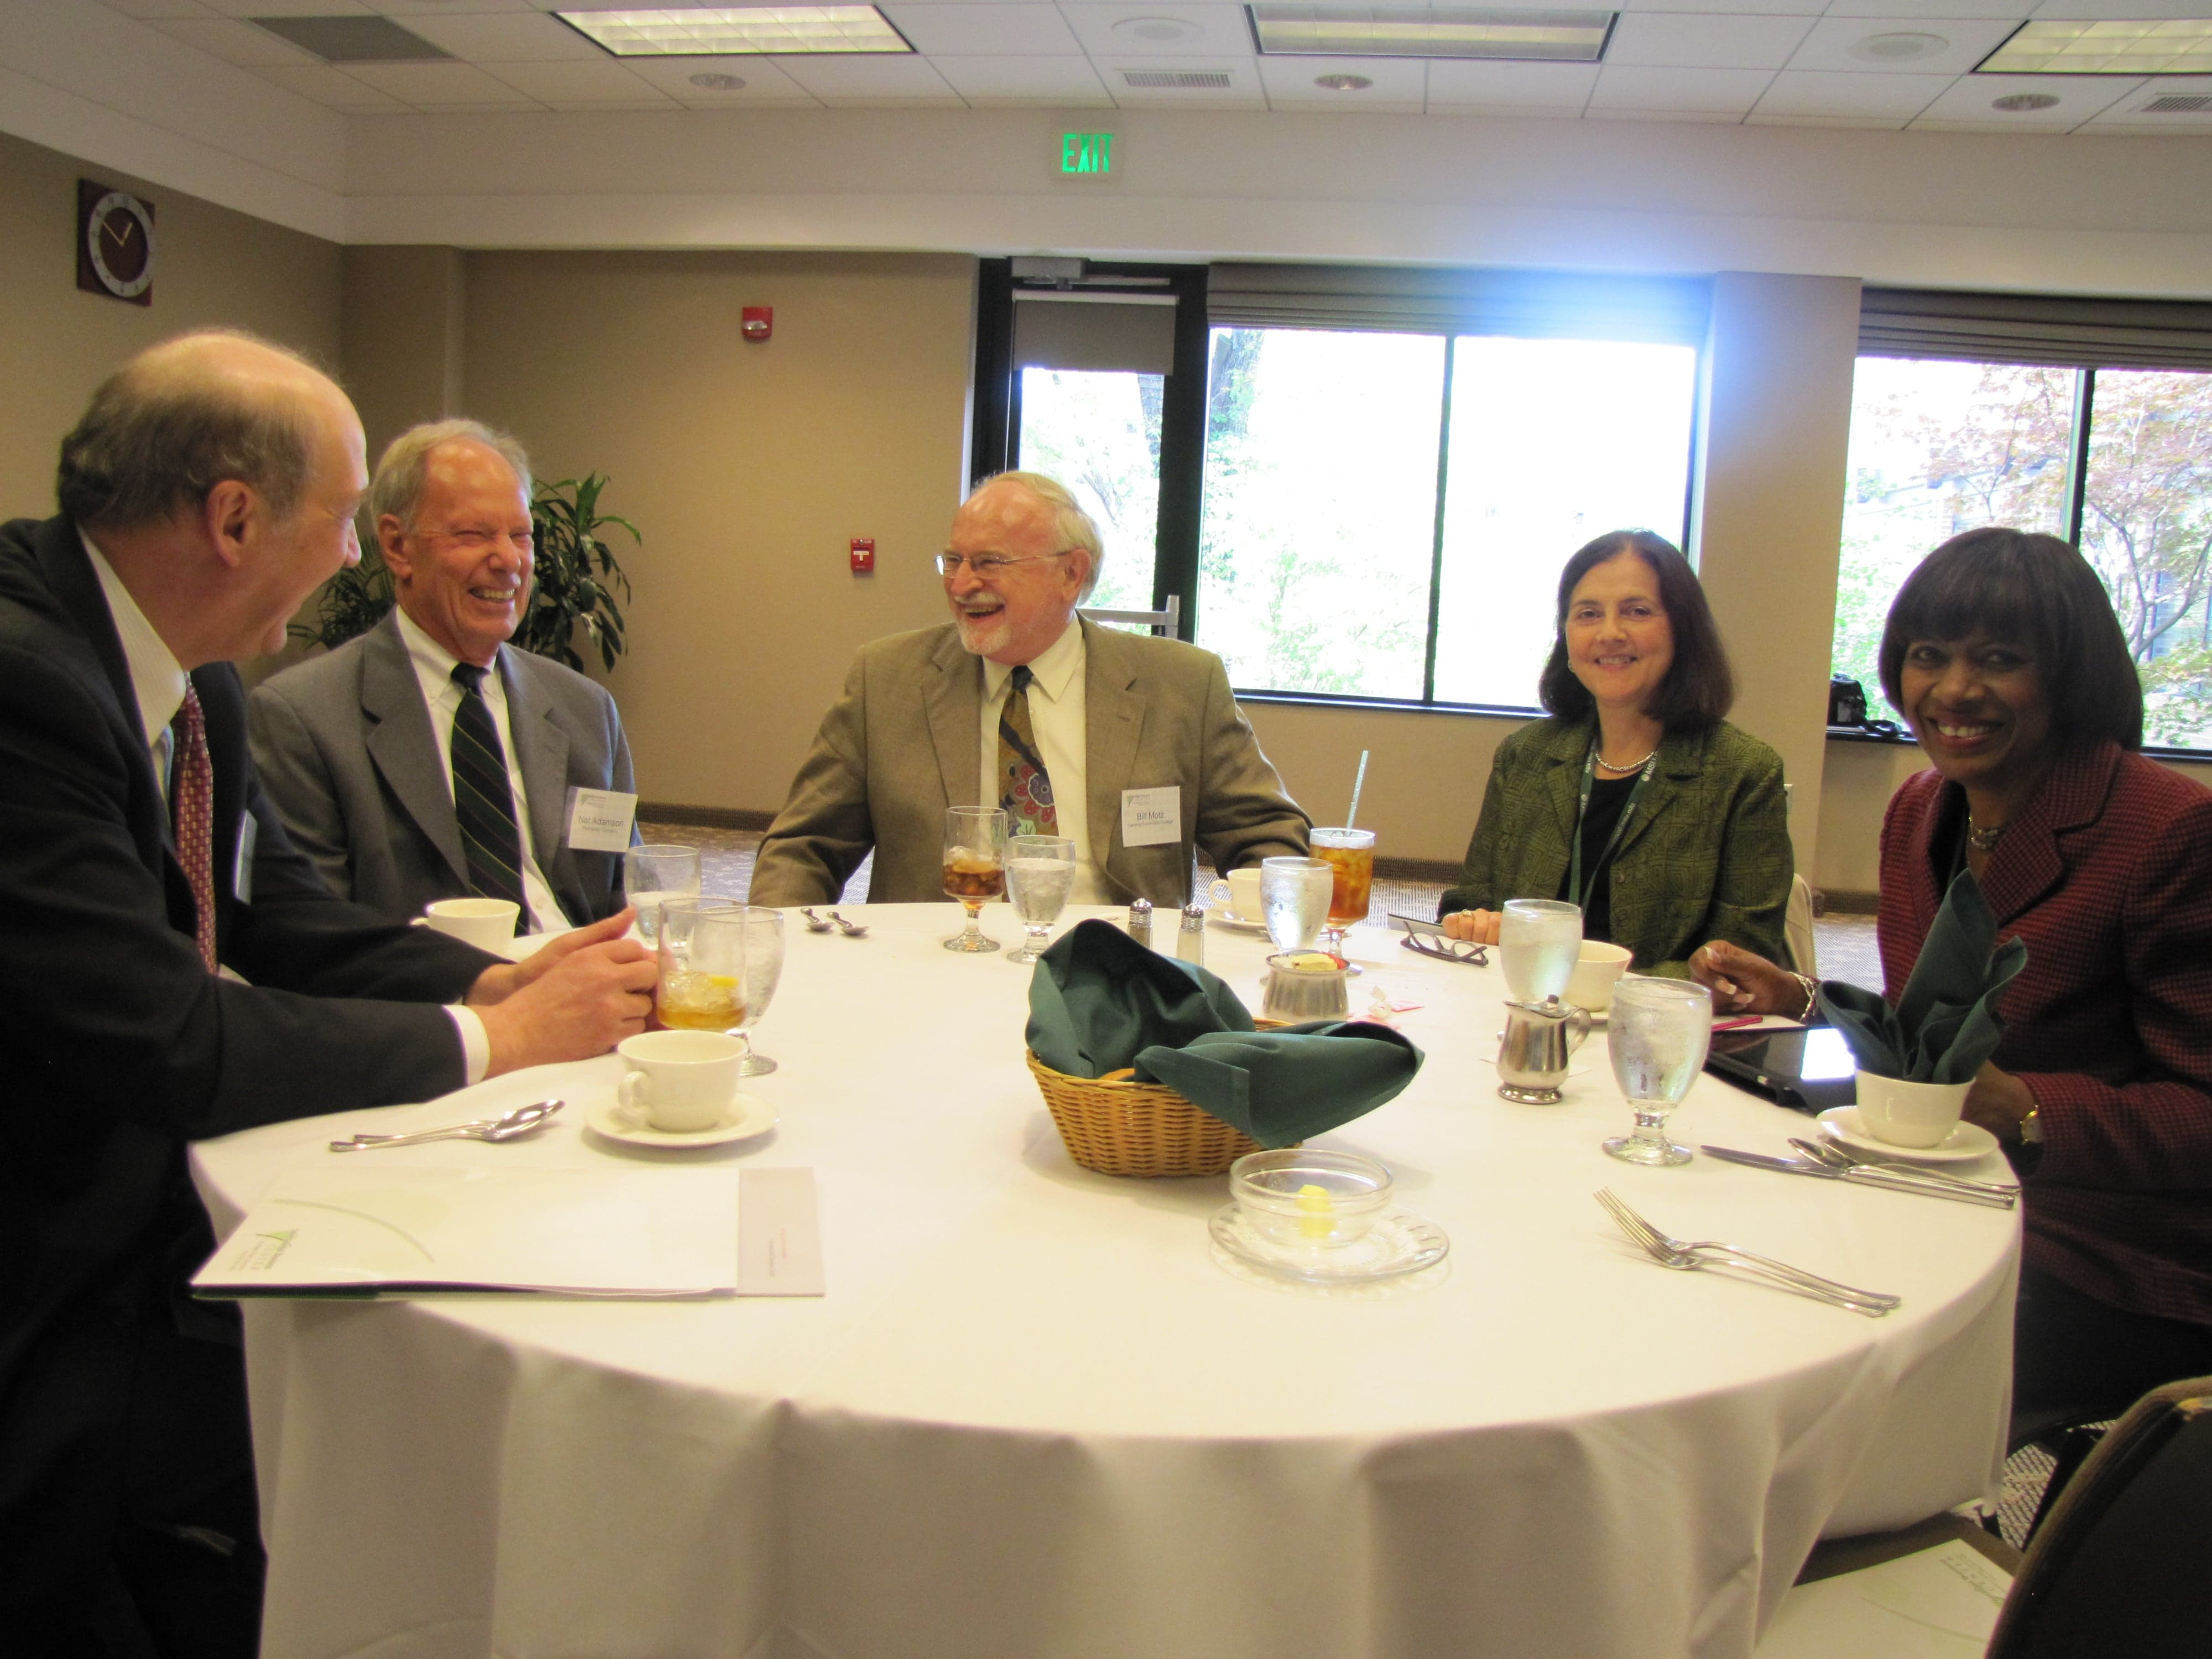 Board Members Sharing a Light Moment